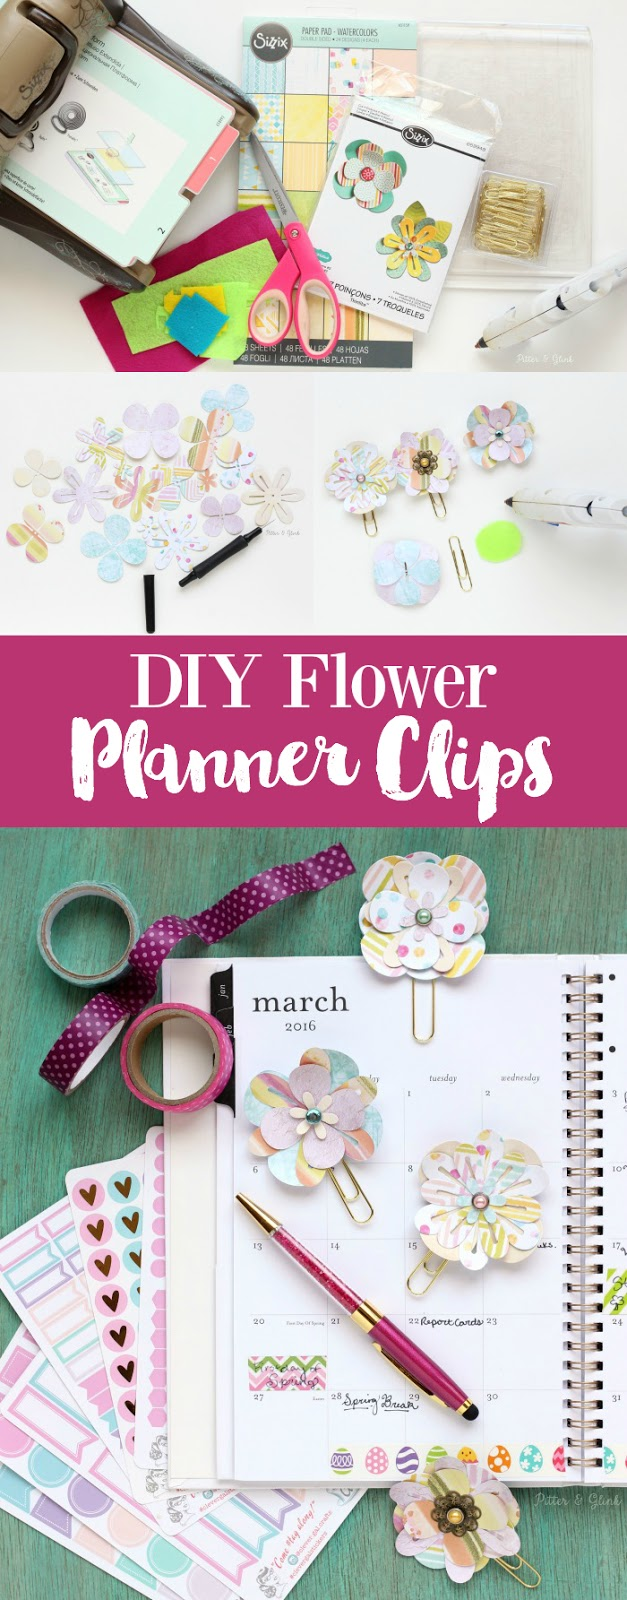 DIY Flower Planner Clips: Make cute floral planner clips from paper! An easy way to add personality to your planner. | www.pitterandglink.com